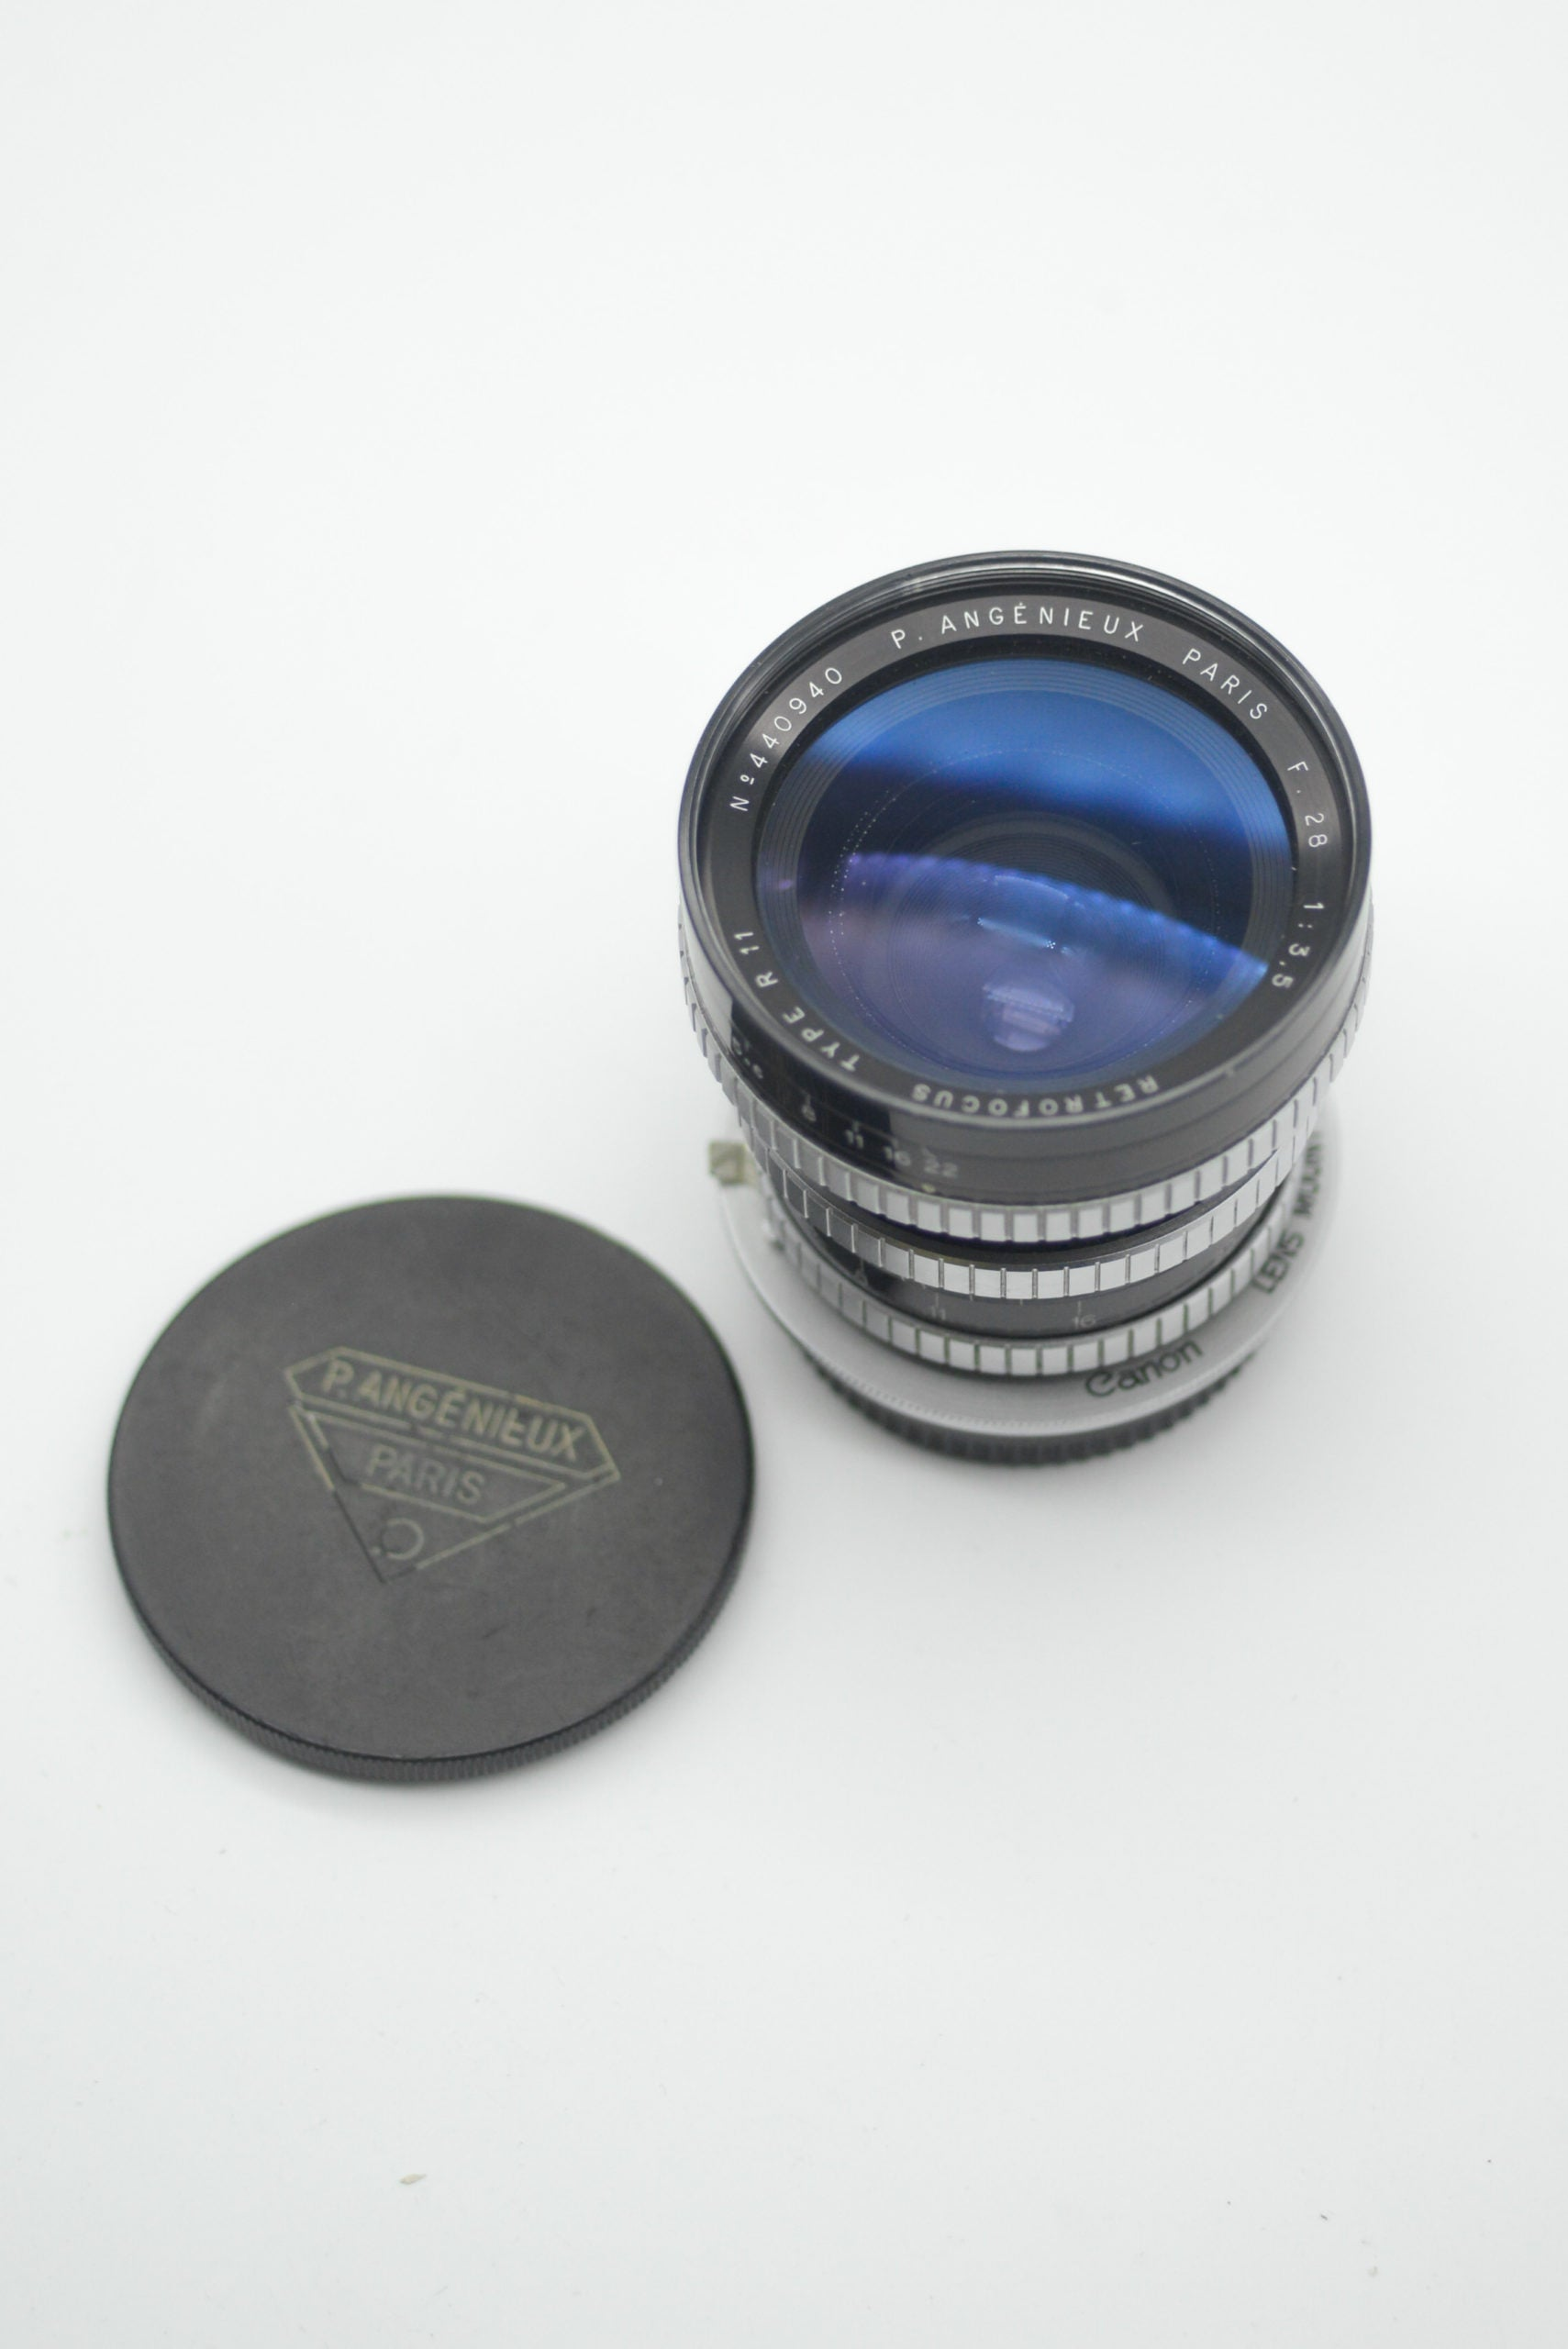 The OG wide angle lens: P. Angénieux 28mm f3.5 Retrofocus Type R11 review